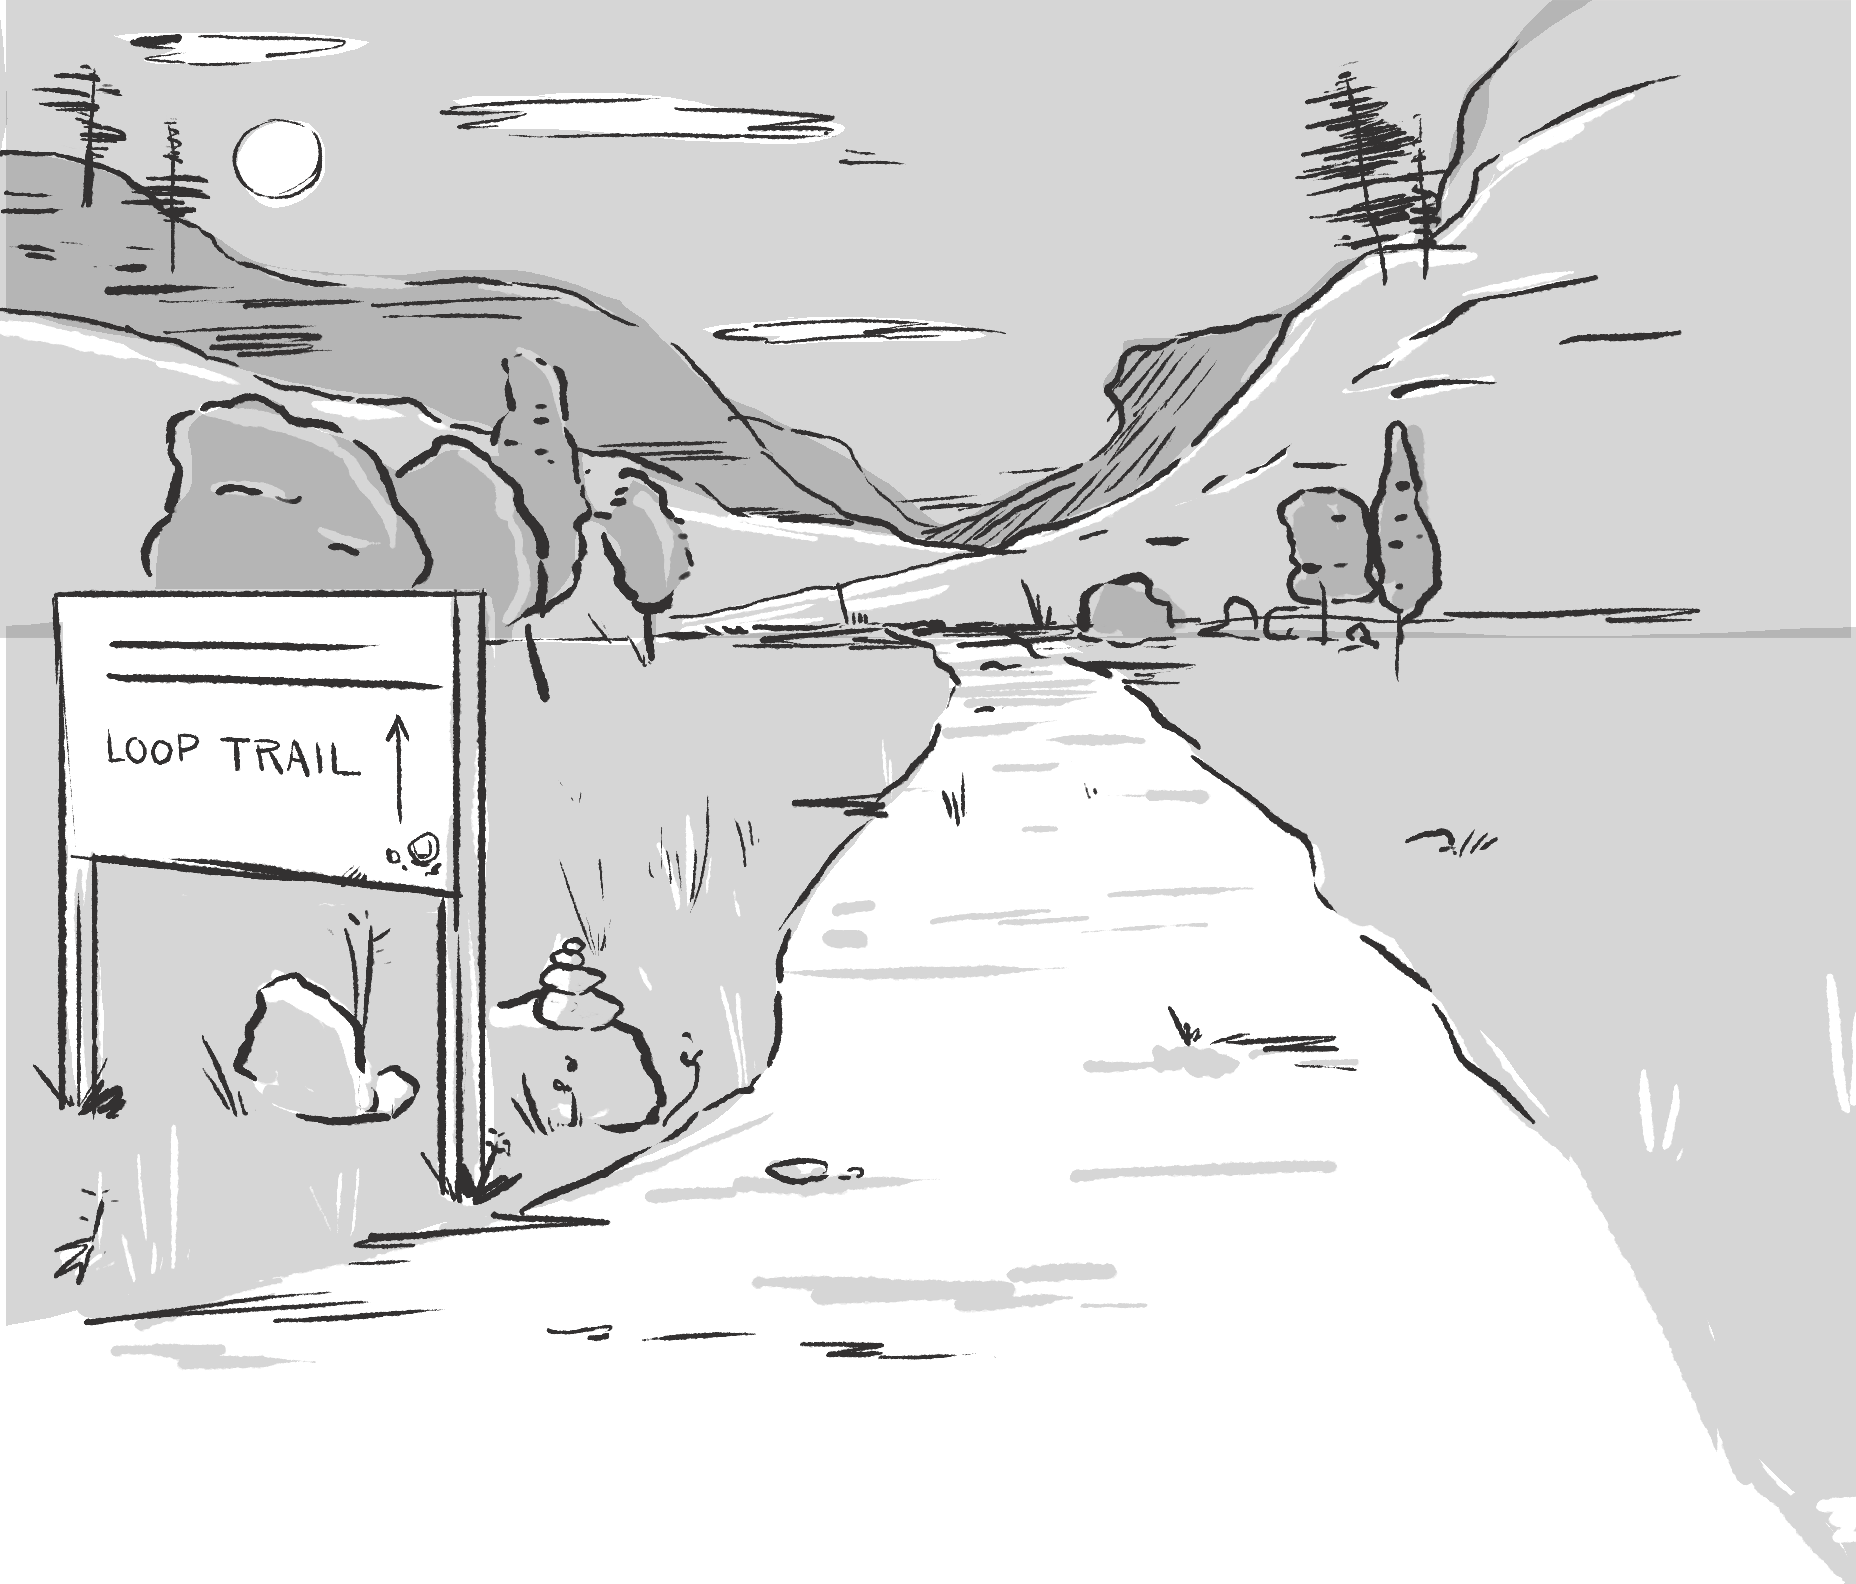 20170307_FINAL_0006_TRAIL-HEAD.png